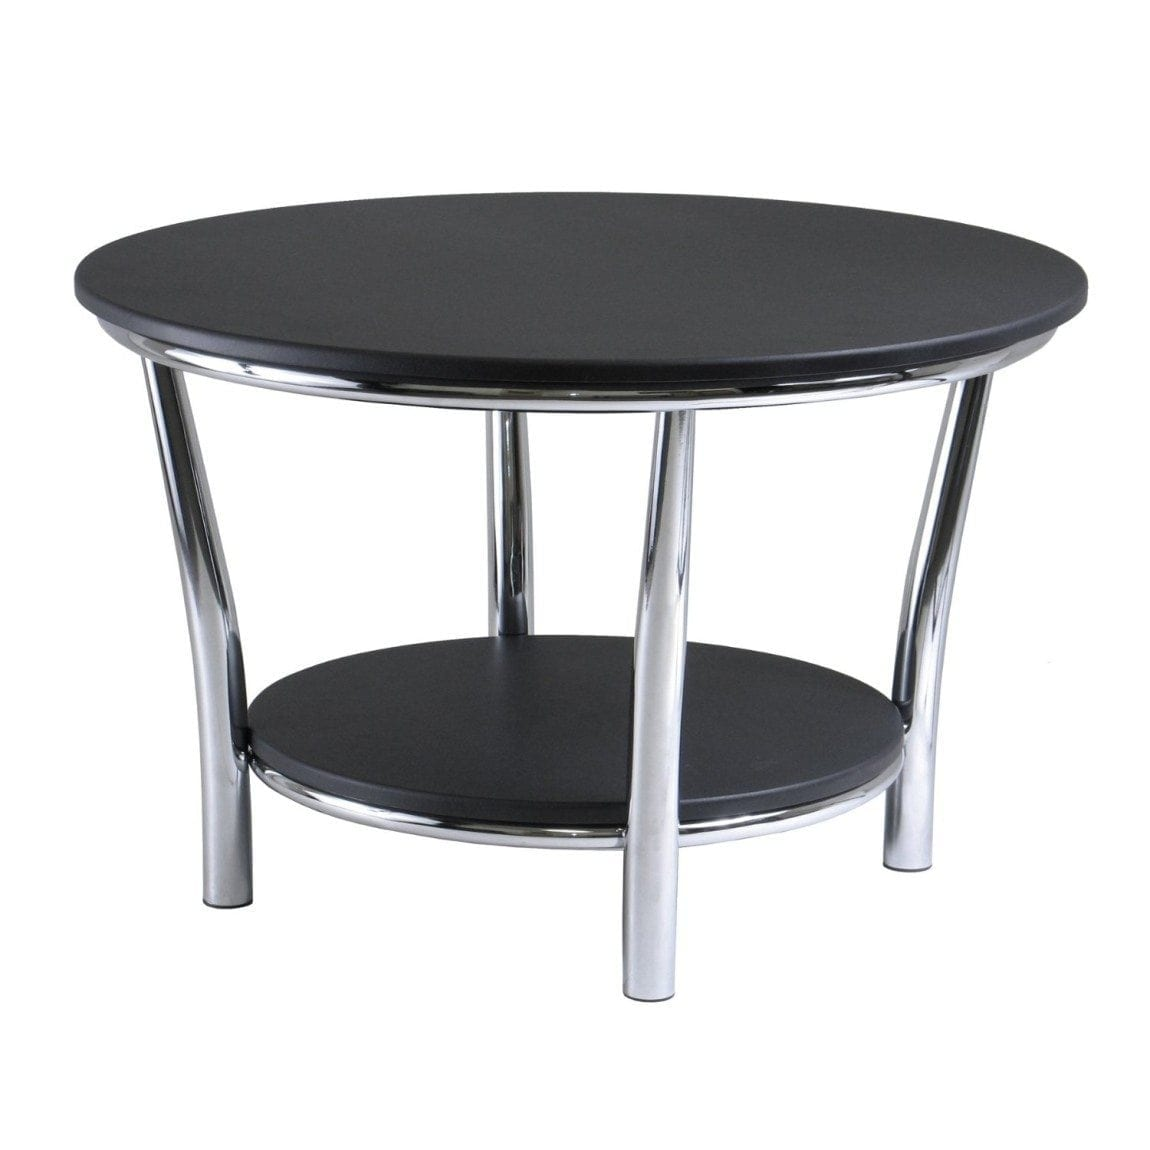 Winsome Wood Maya Round Coffee Table, Black Top, Metal Legs